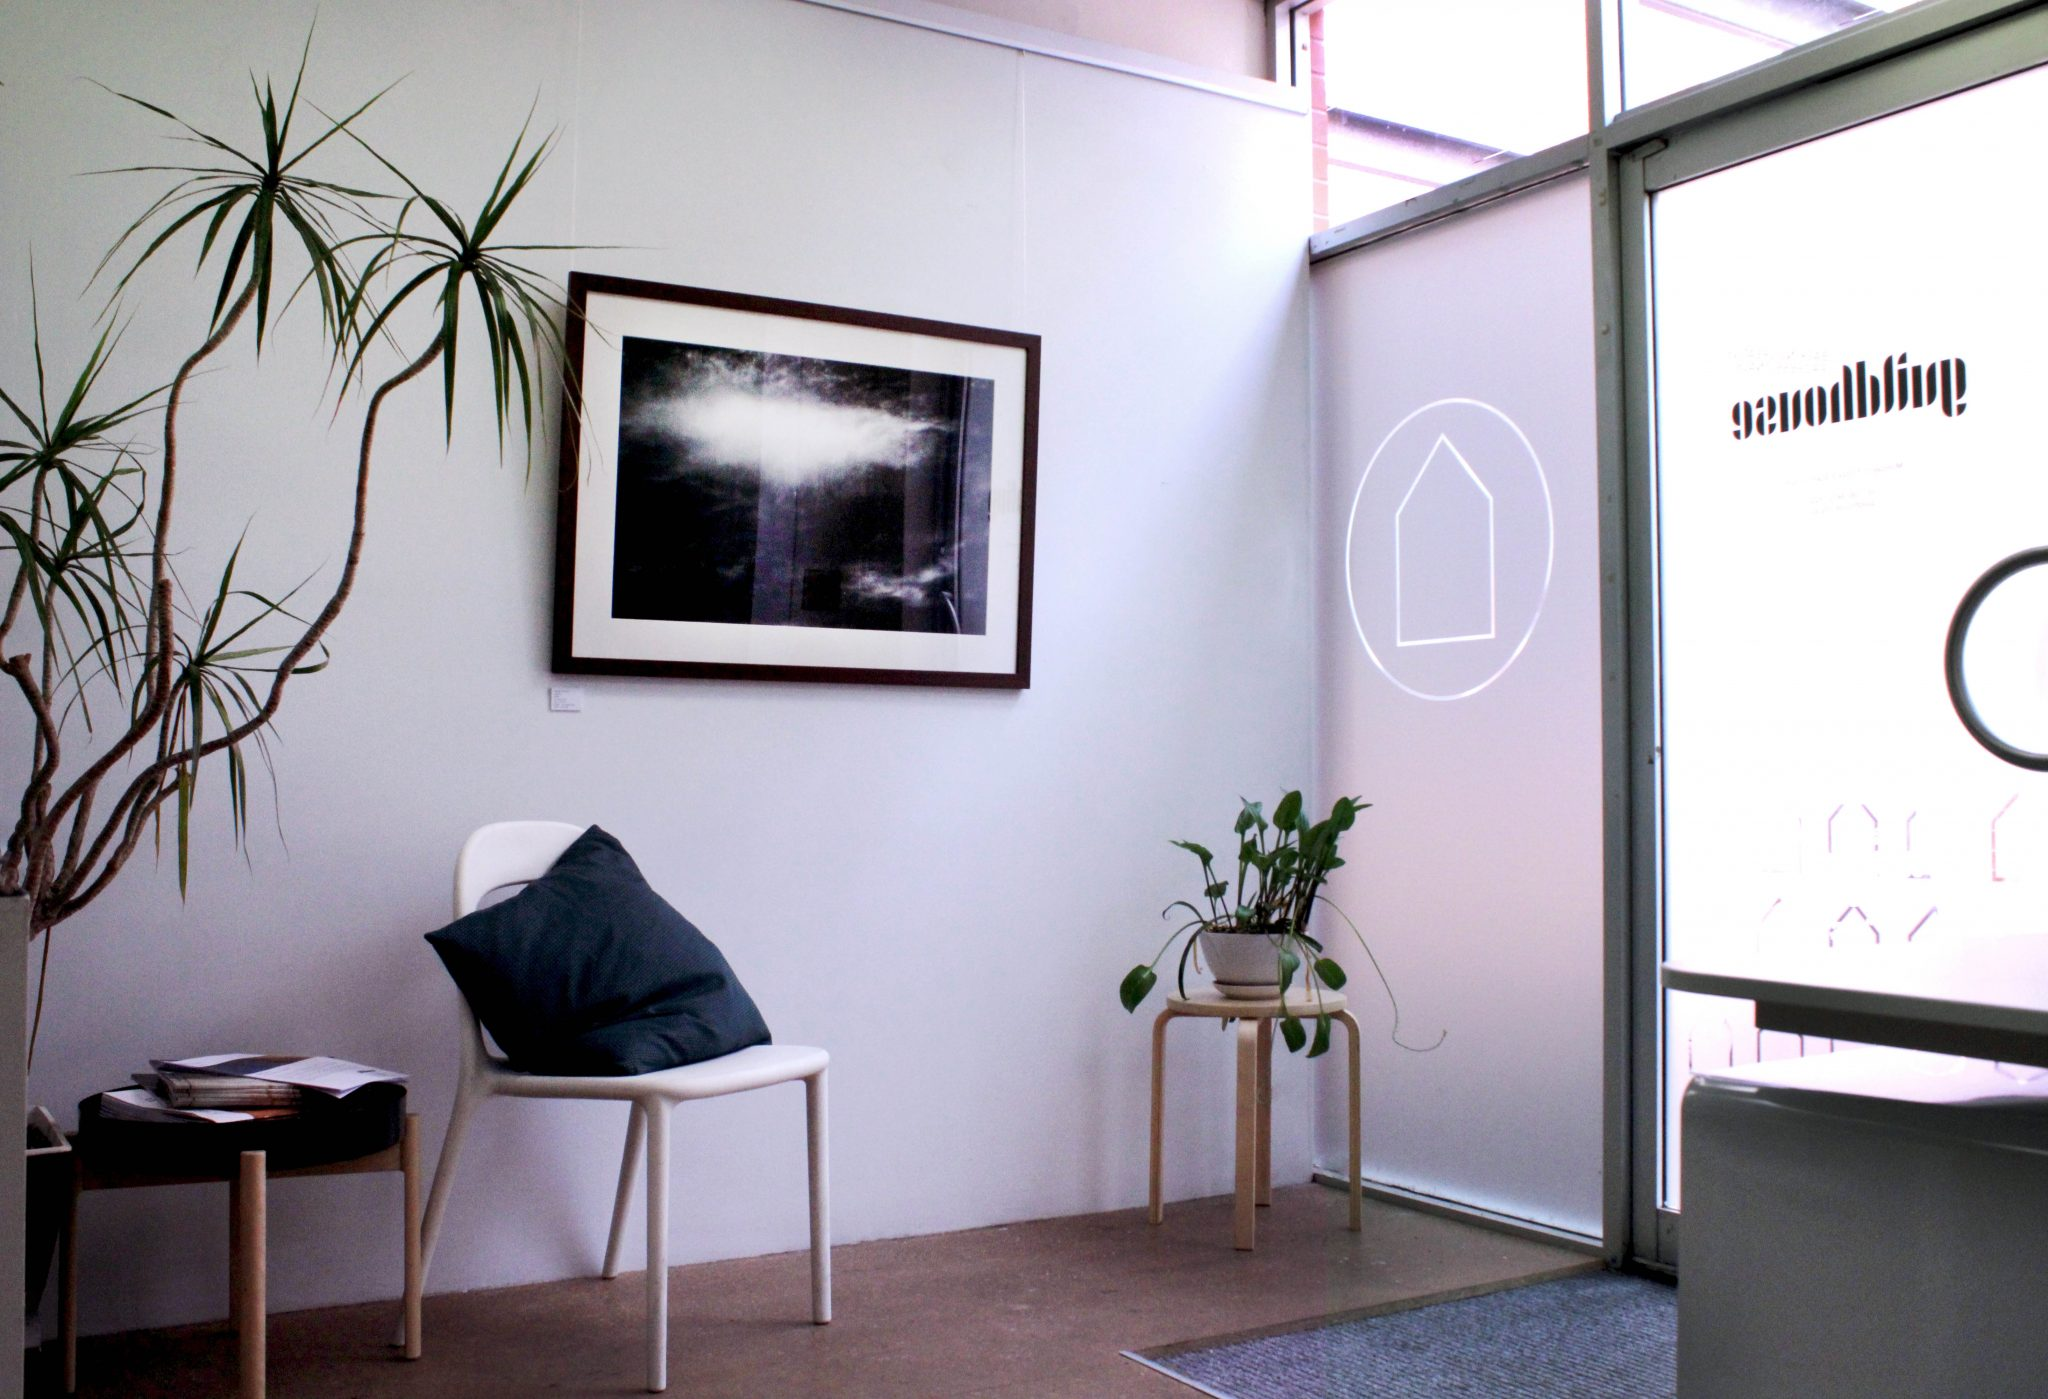 A photograph of the Guildhouse office space, with plants in the left and right side of the image, with a dark artwork in the centre